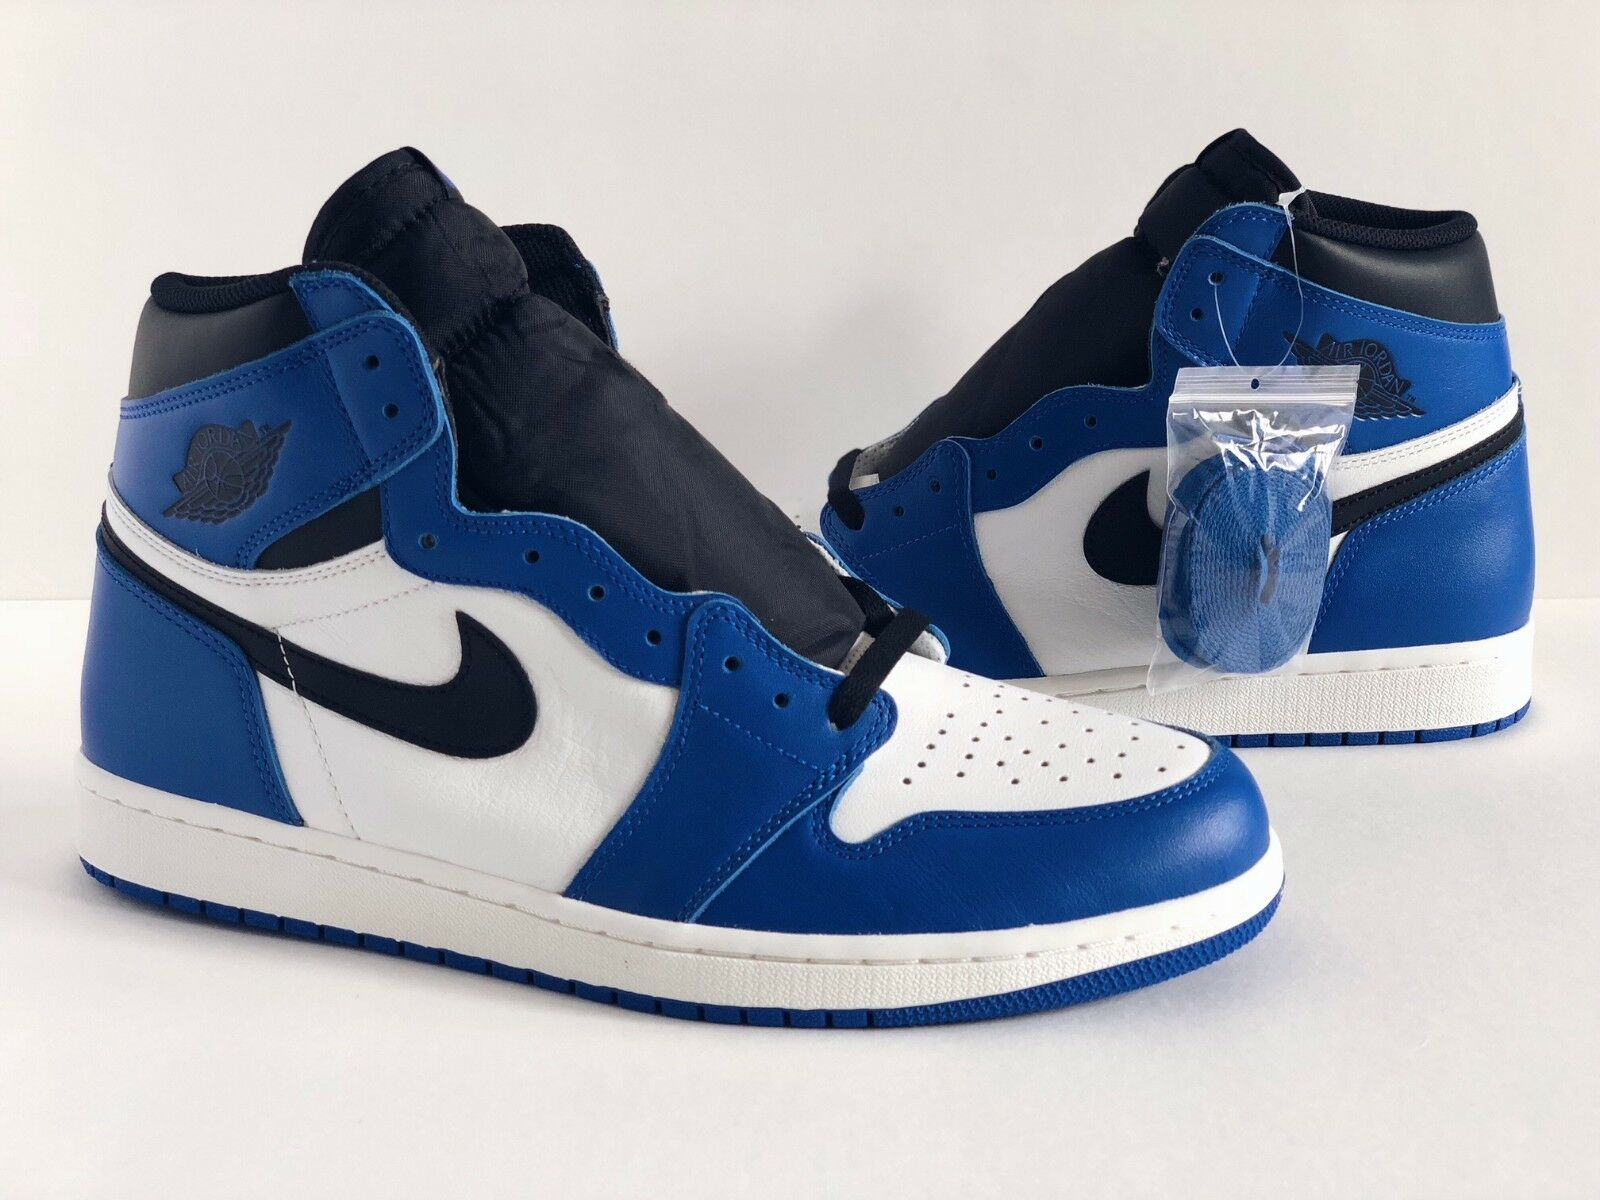 NIKE AIR JORDAN 1 GAME ROYAL [SZ 9 - 14] RETRO I HIGH OG BLUE BLK LOT 555088-403